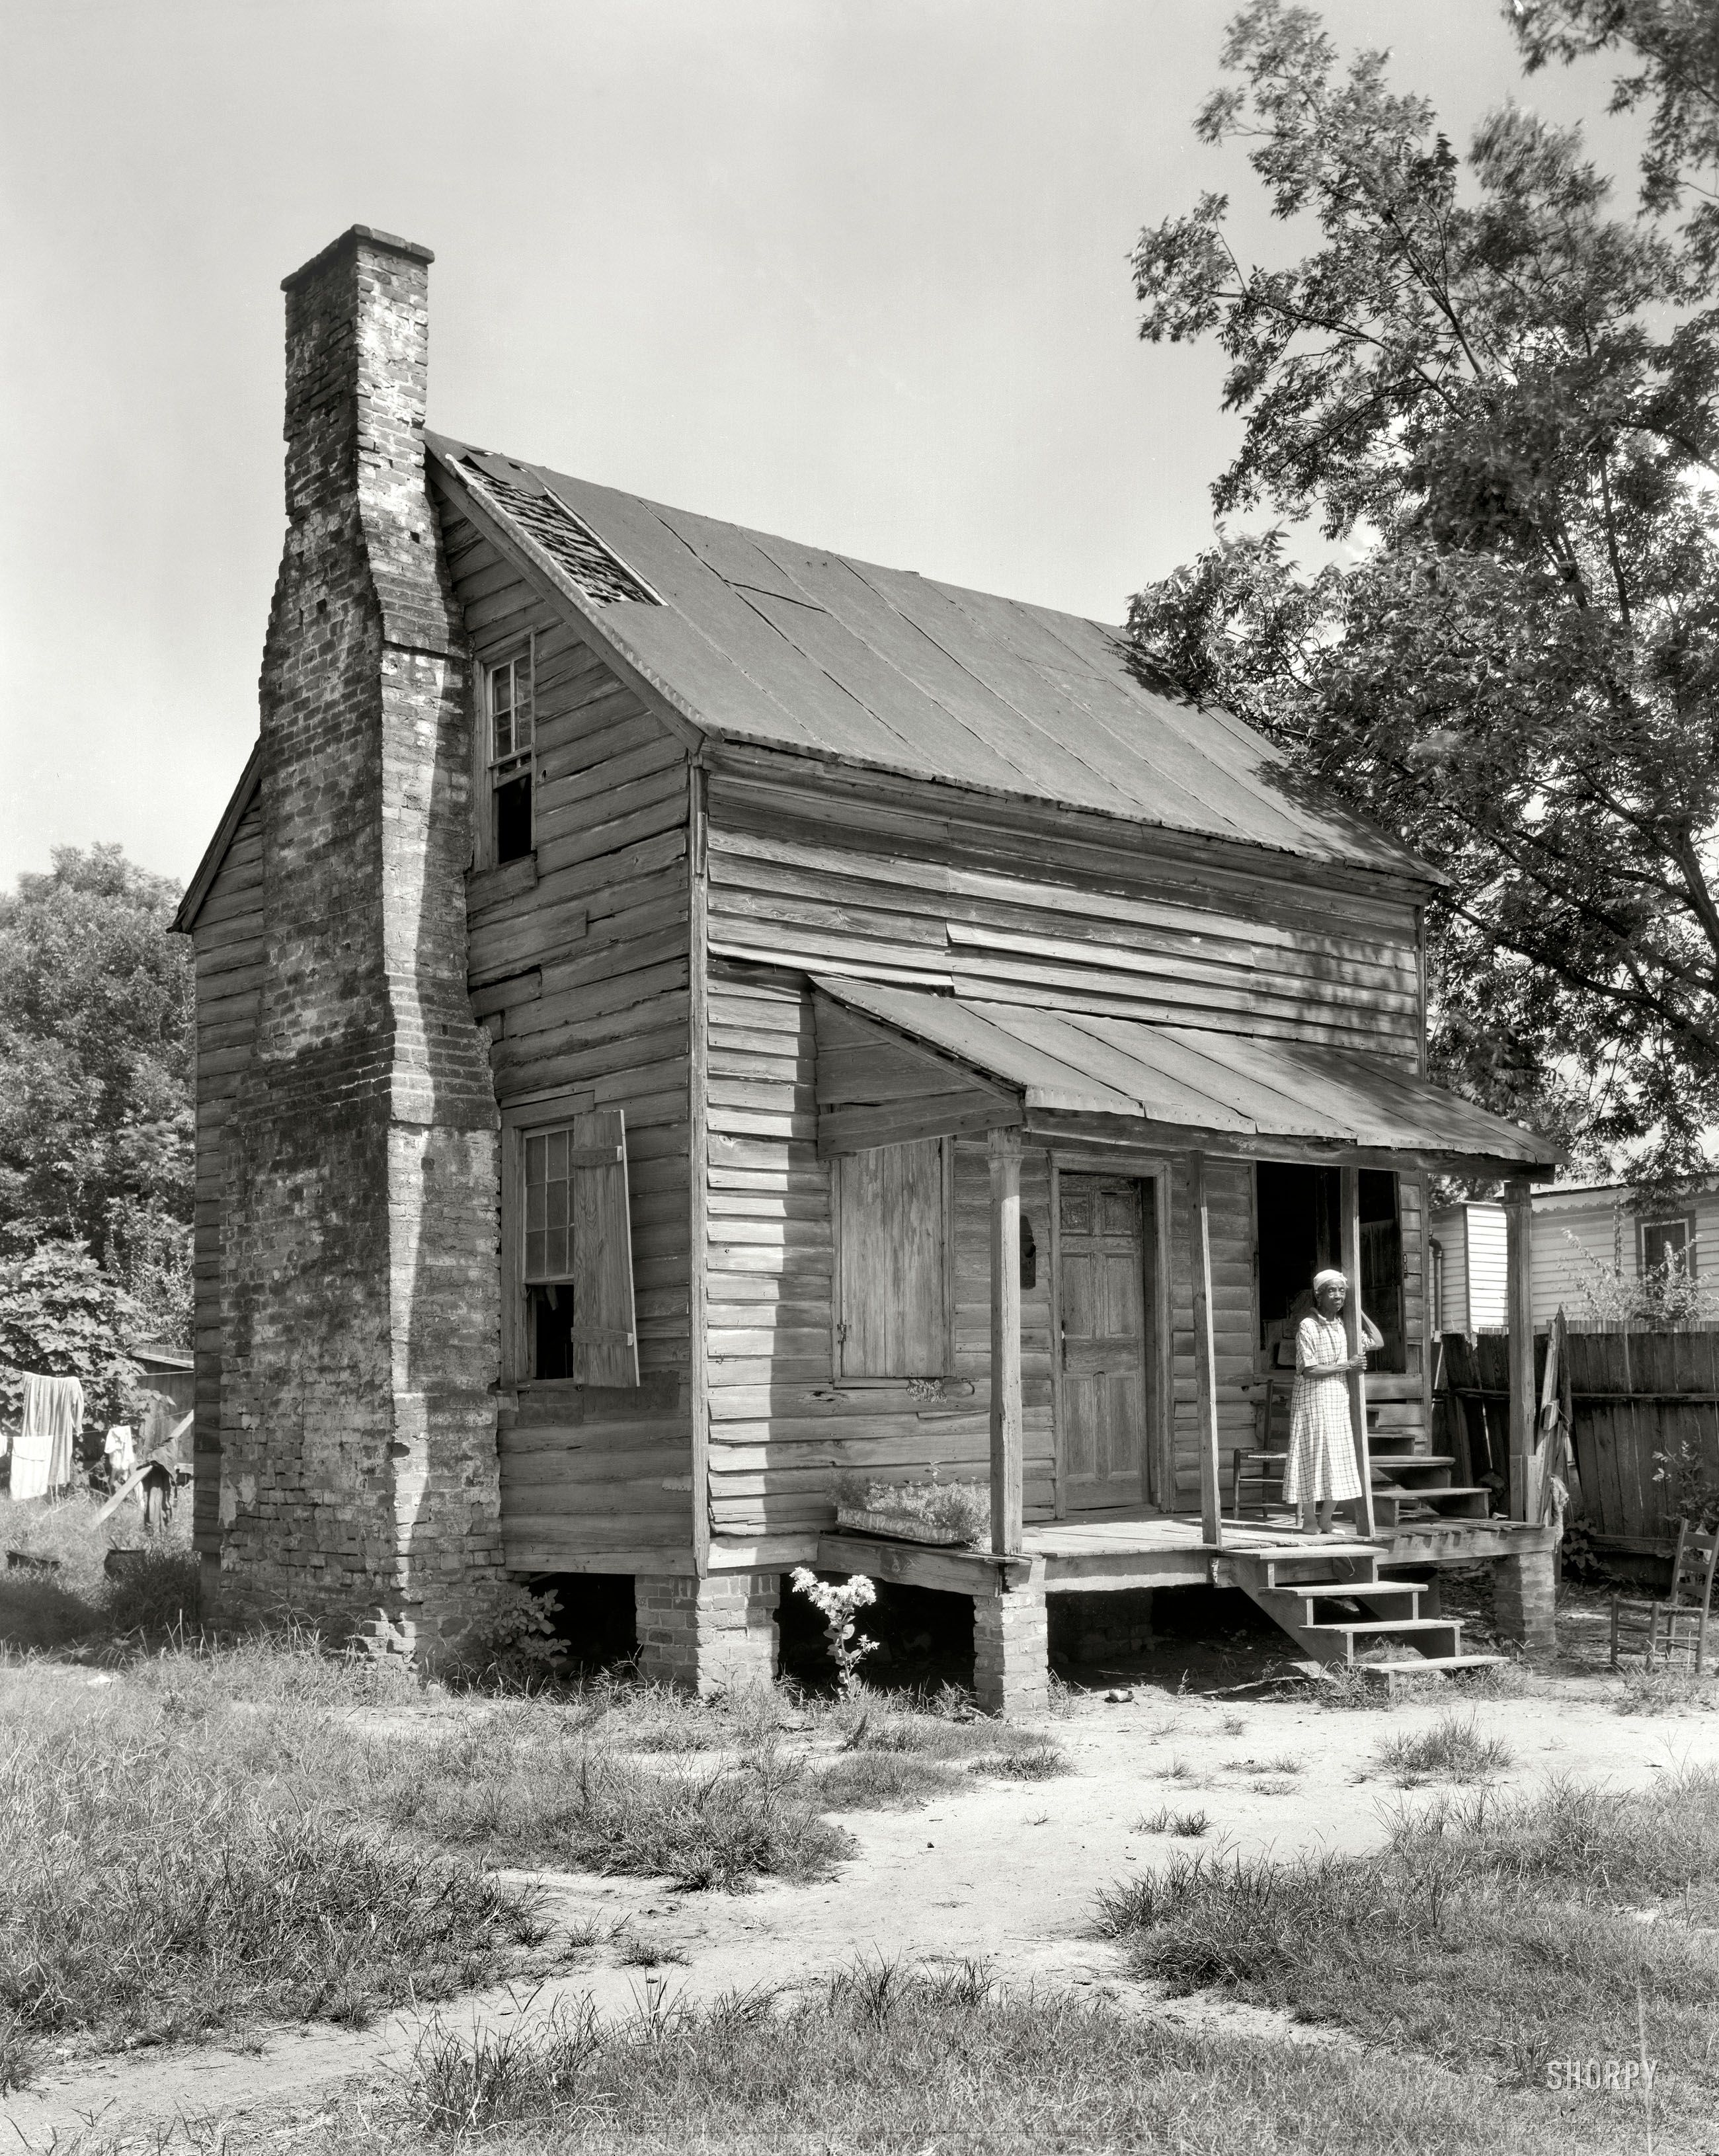 1944 baldwin county georgia former slave cabin for Compact cottages georgia